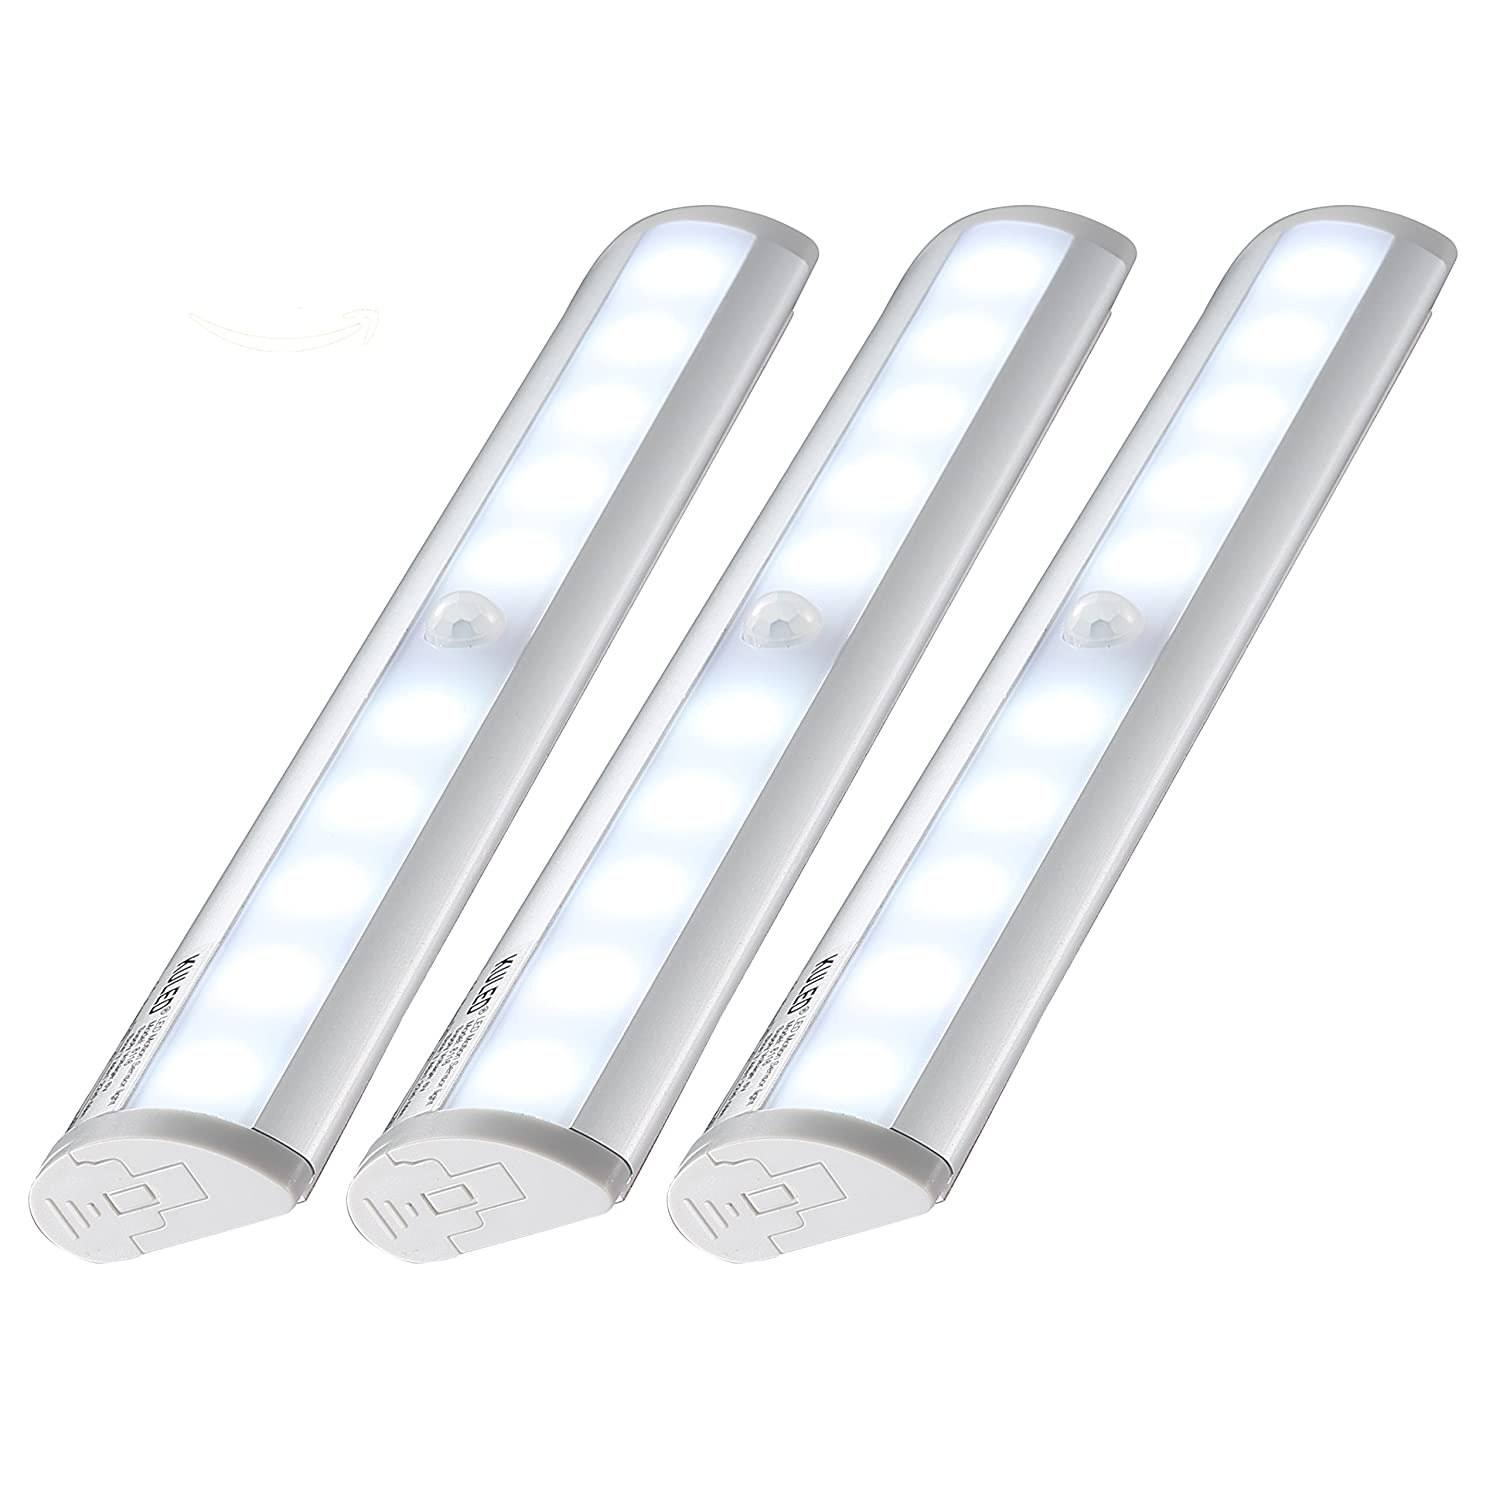 Kuled 10-led Wireless Motion Sensing Stick-on Anywhere Step LED Light Bar with Magnetic Strip, Pure White,3-Pack